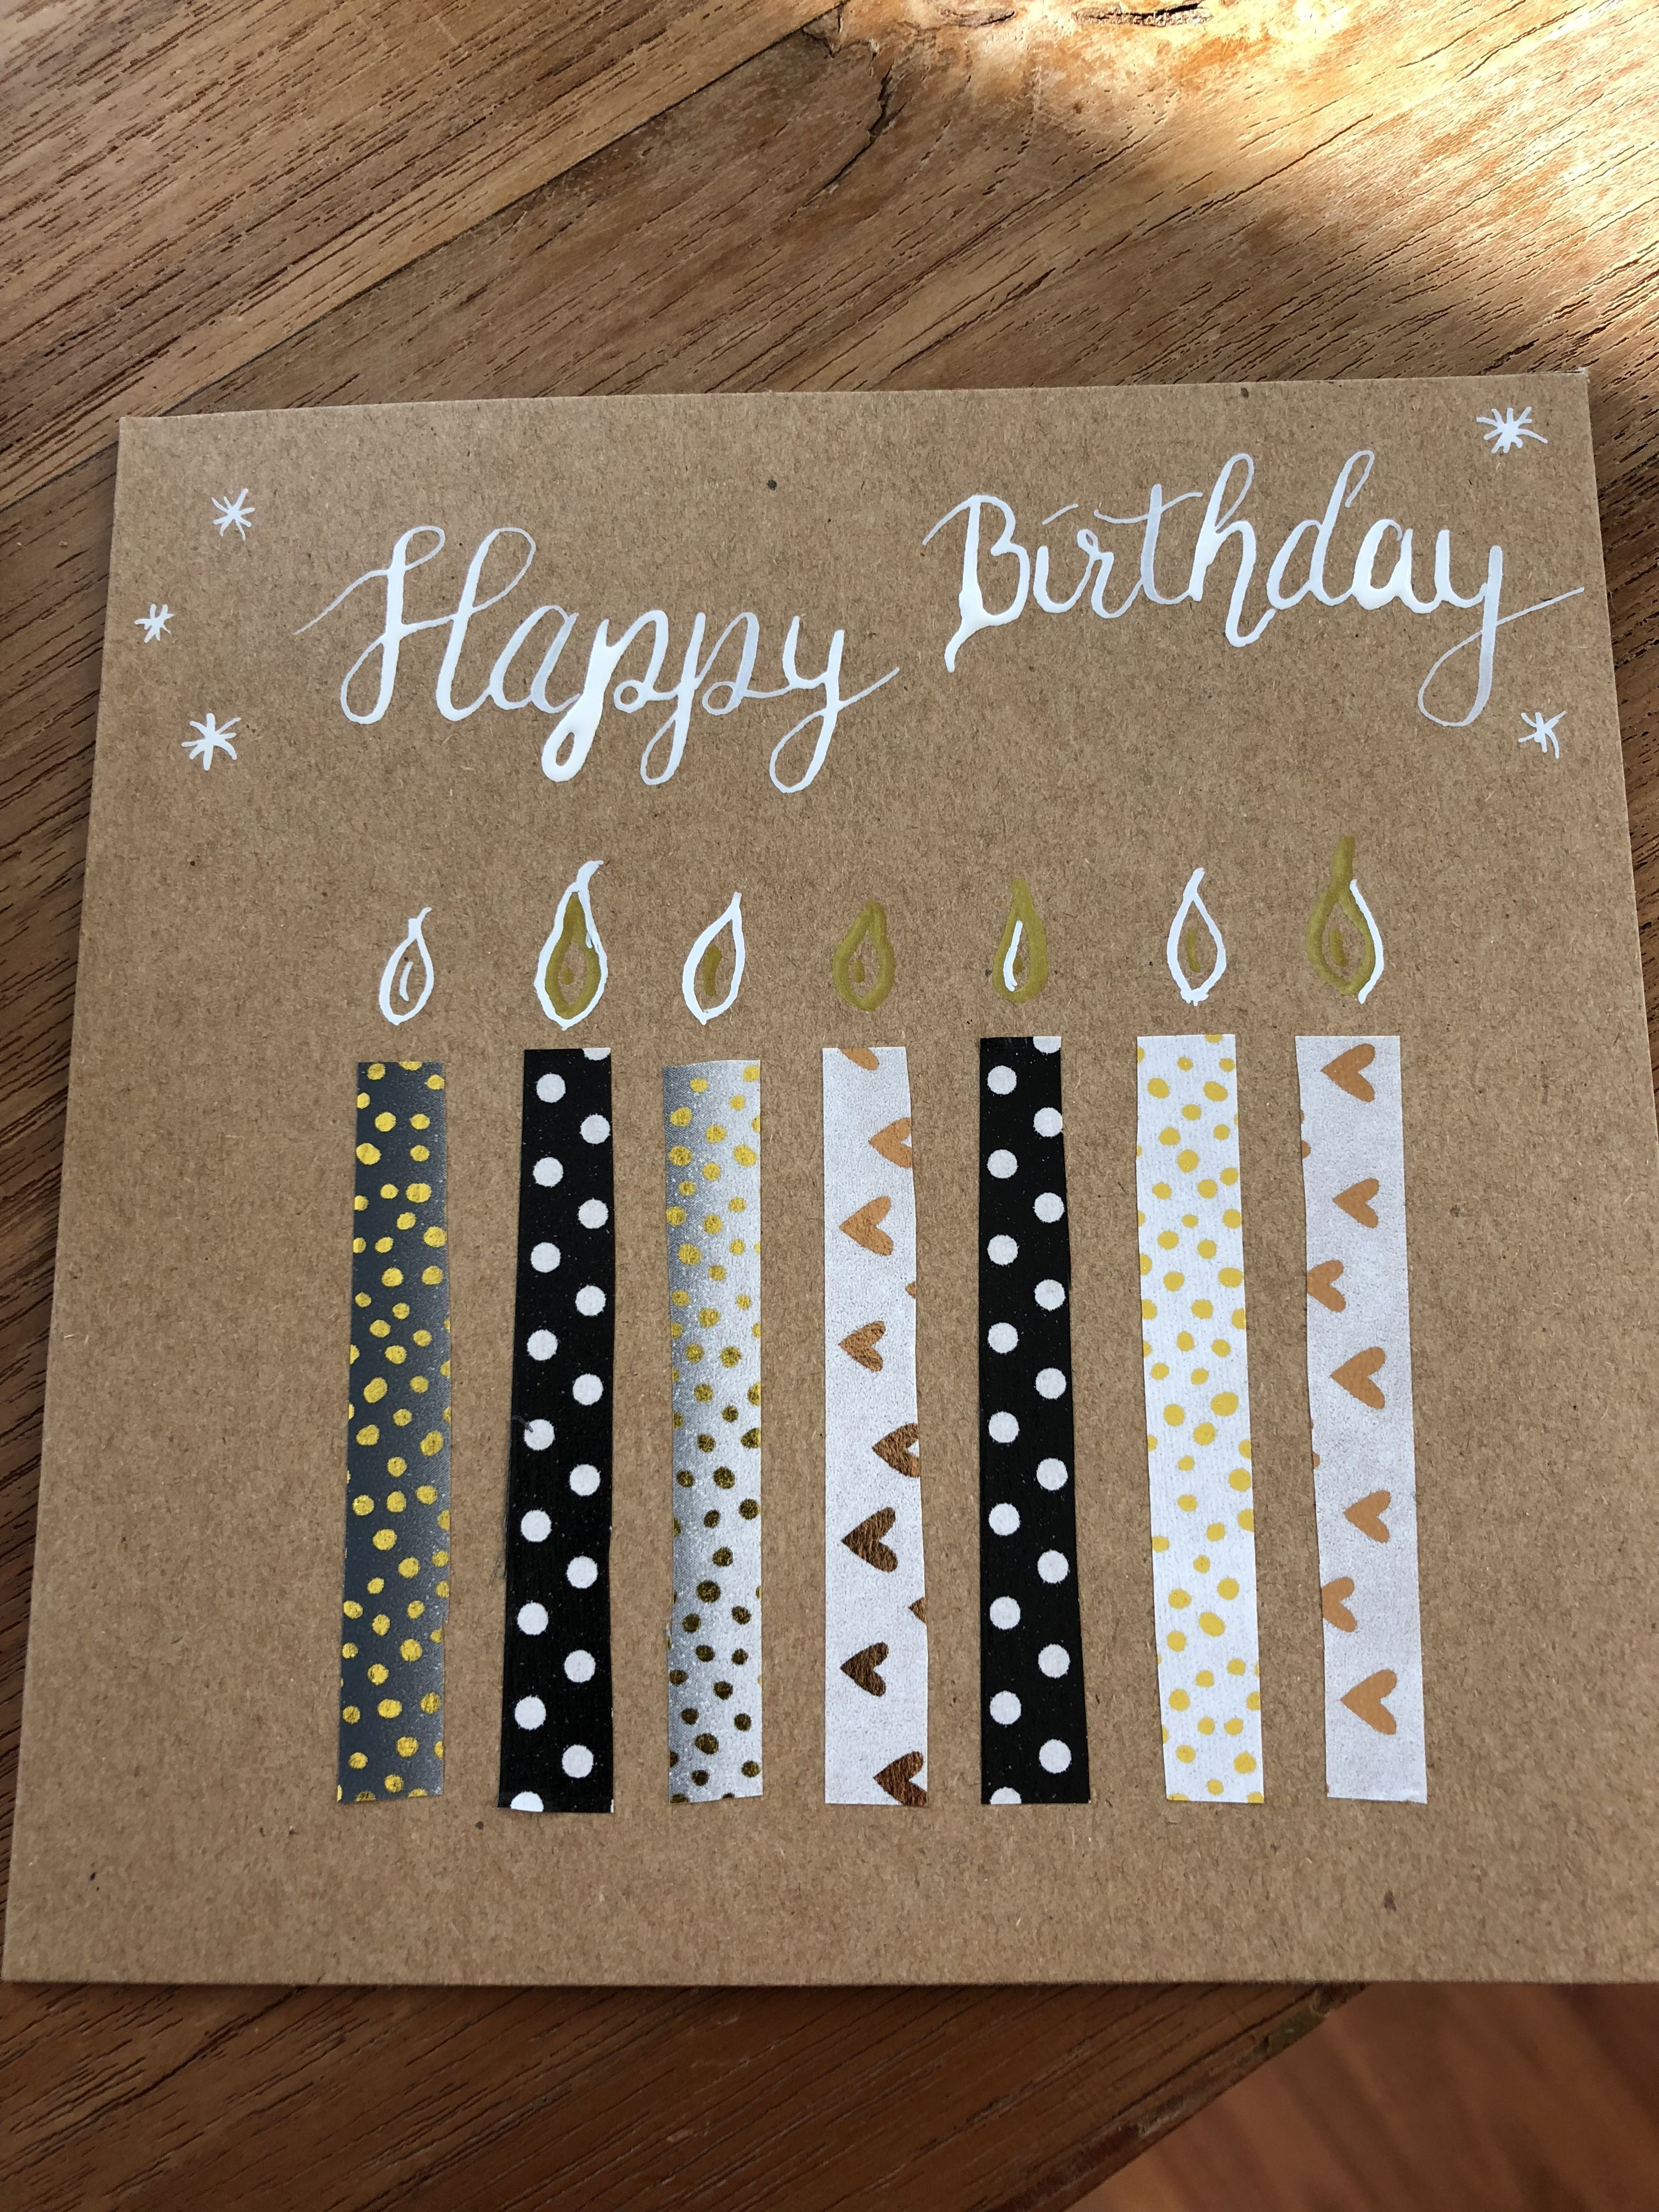 Terrific Absolutely Free Birthday Candles Letters Tips While You Make A Wedding Just What Pops Into Your Head B In 2021 Paper Crafts Cards Gifts Cards Cards Handmade